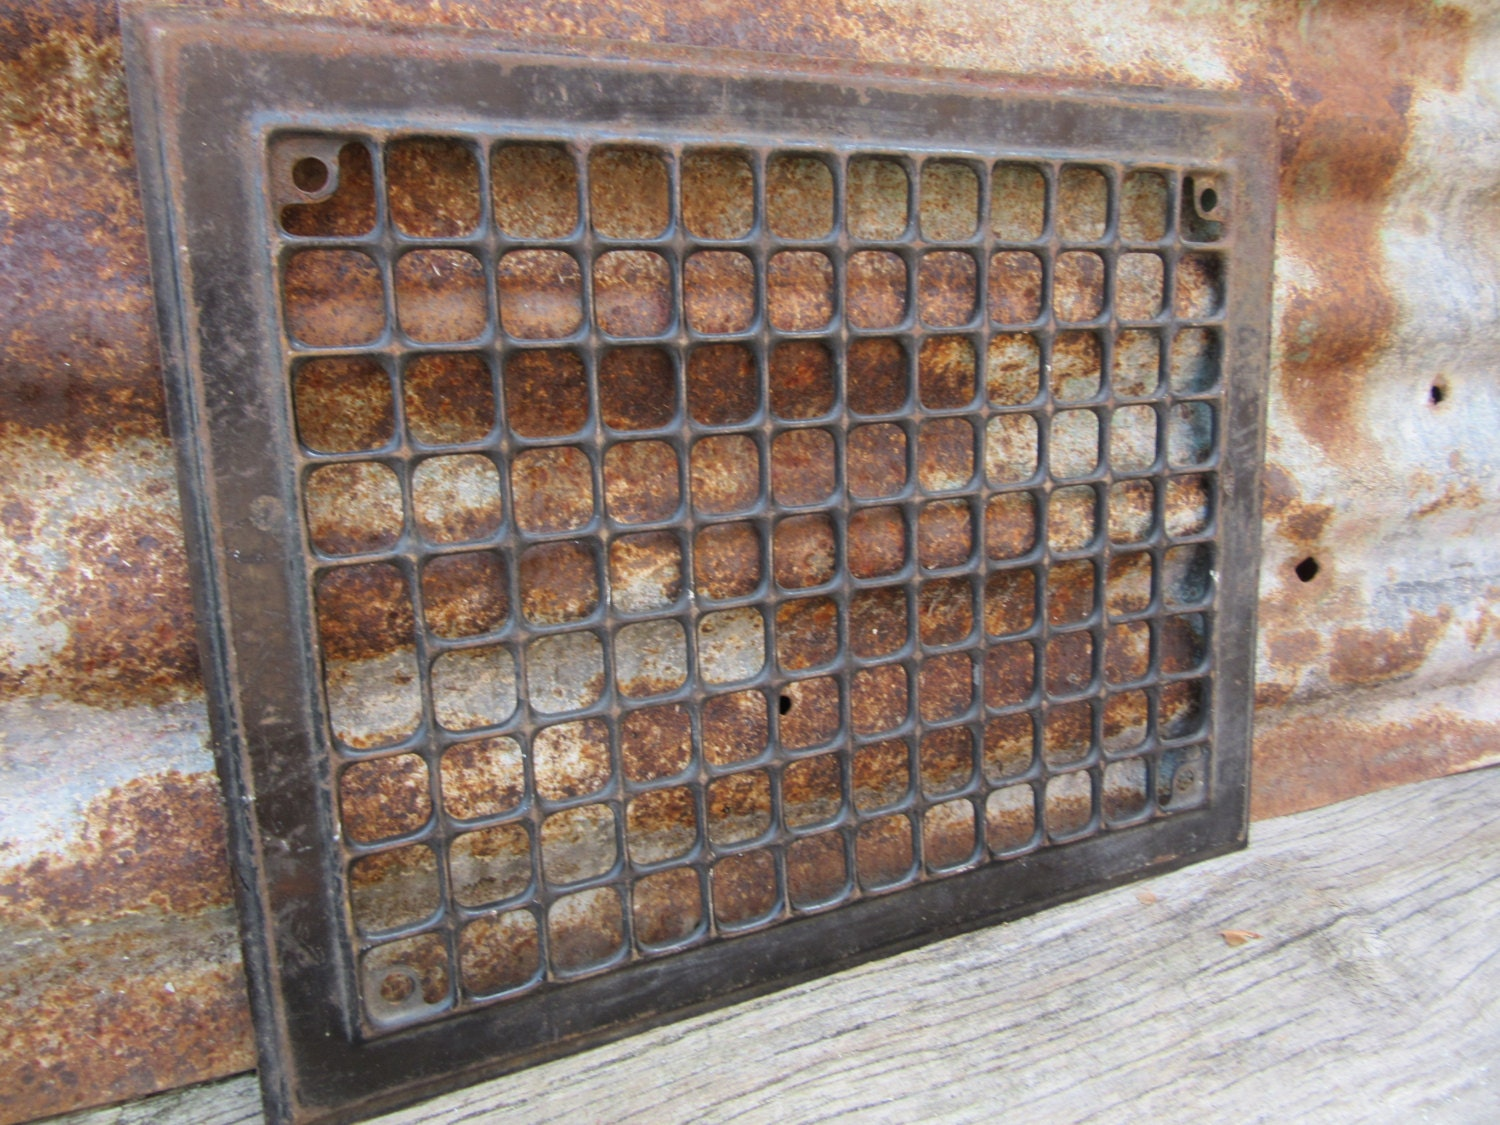 #836748 Antique Metal Heating Duct Cover Vent Aged Patina Victorian Best 3573 Heating Duct Covers photos with 1500x1125 px on helpvideos.info - Air Conditioners, Air Coolers and more